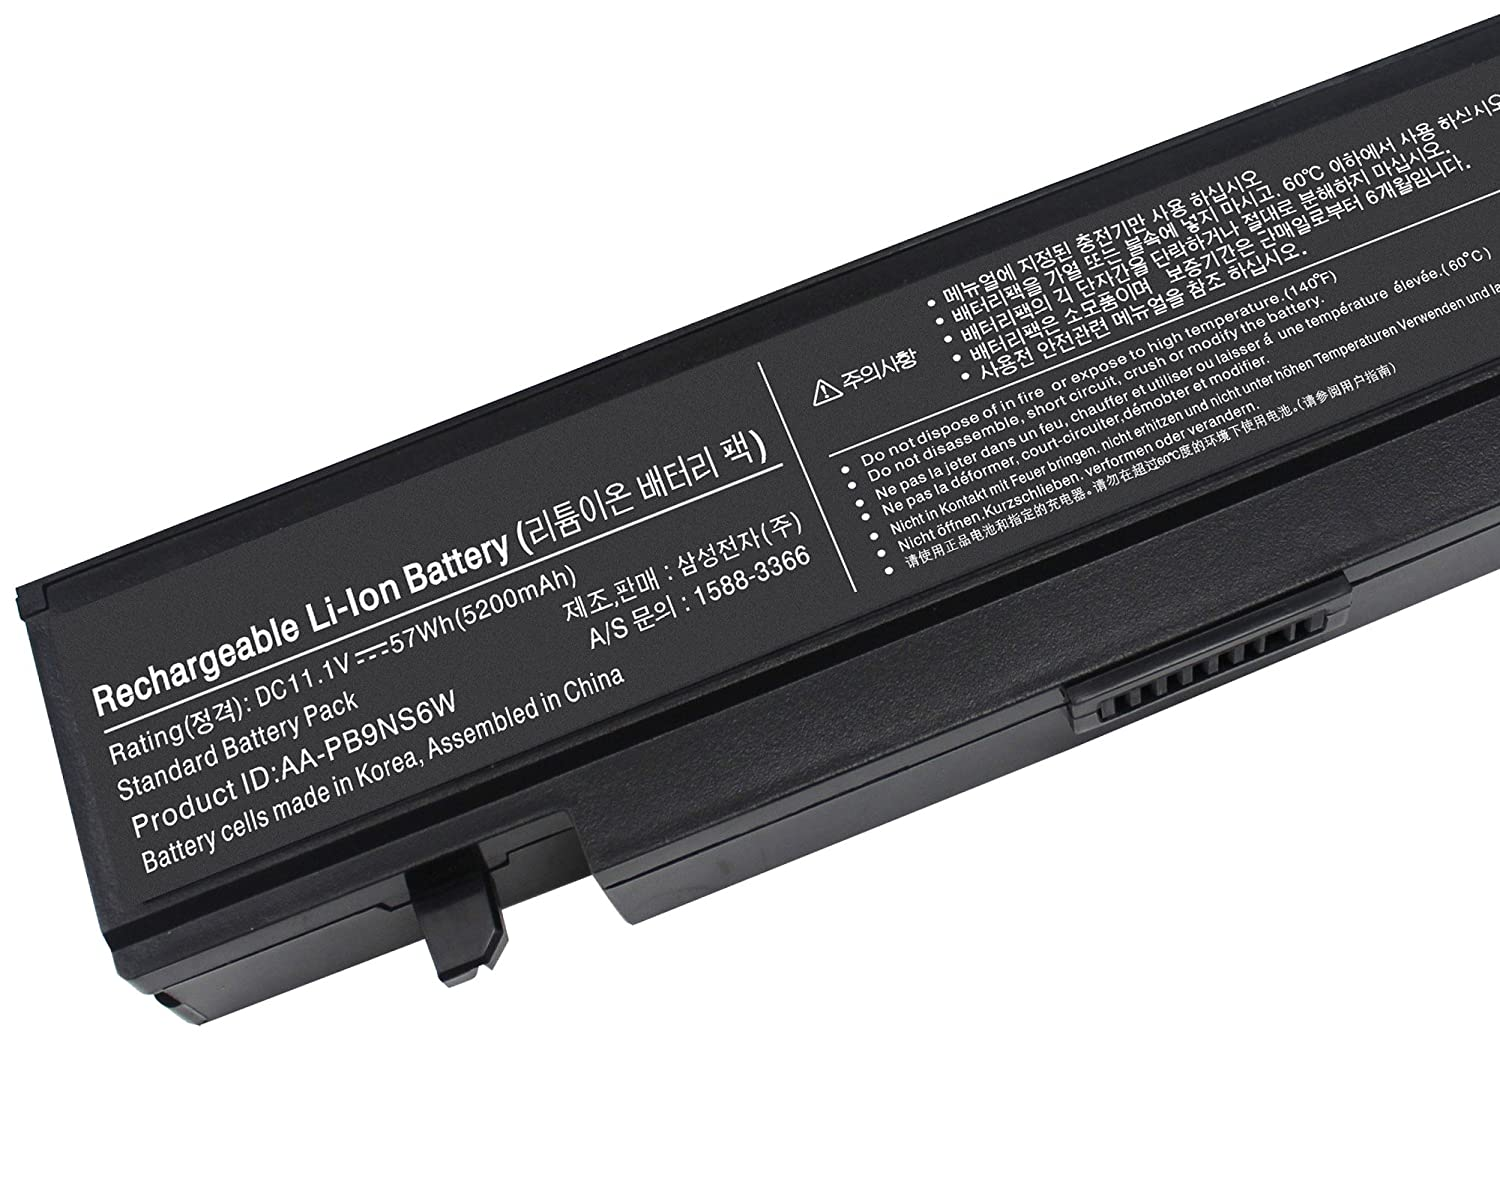 Gomarty NEW Laptop Battery for Samsung R420 R430 R468 R470 R480 RV510 RV511 RC512 R519 R520 R530 R540 R580 R730 Q320 Q430 NP350E7C NP550P5c Np365e5c ...